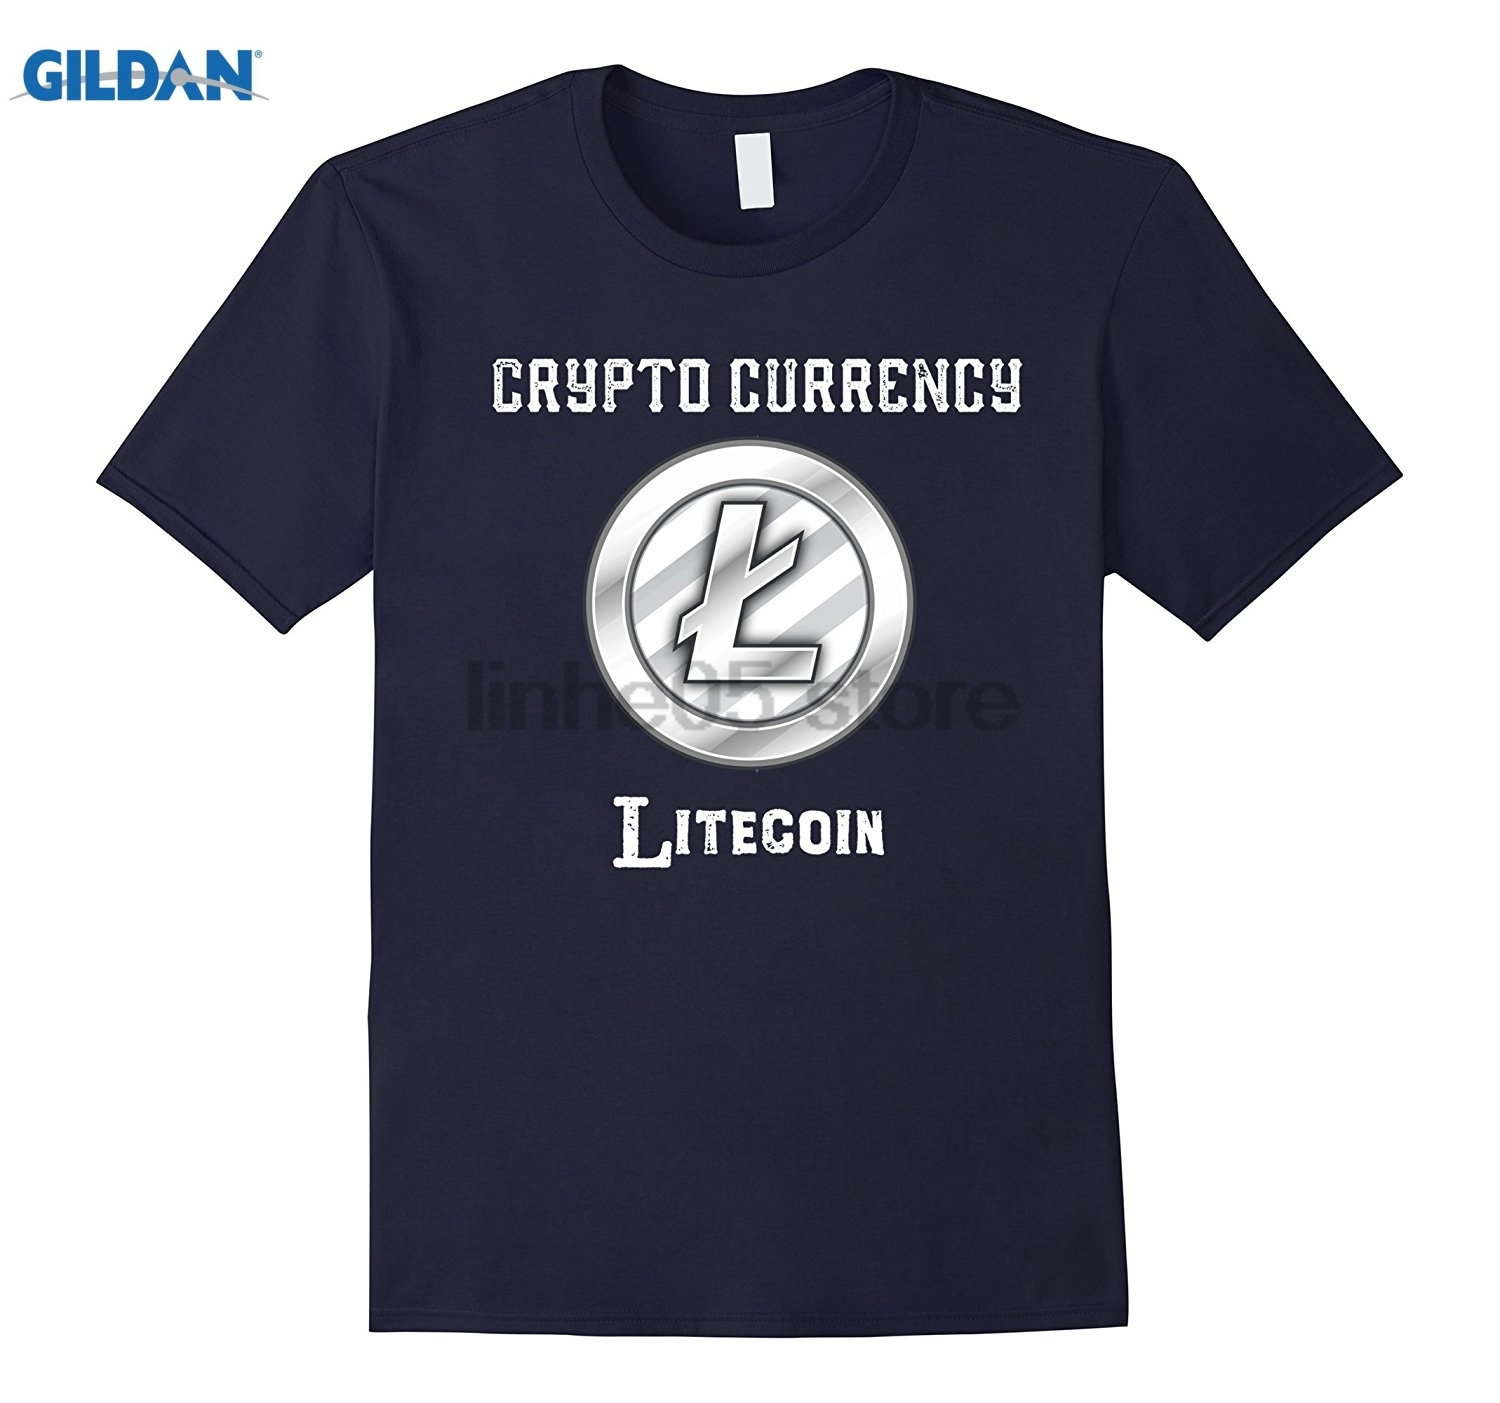 GILDAN Crypto Currency Litecoin T-Shirt Womens T-shirt